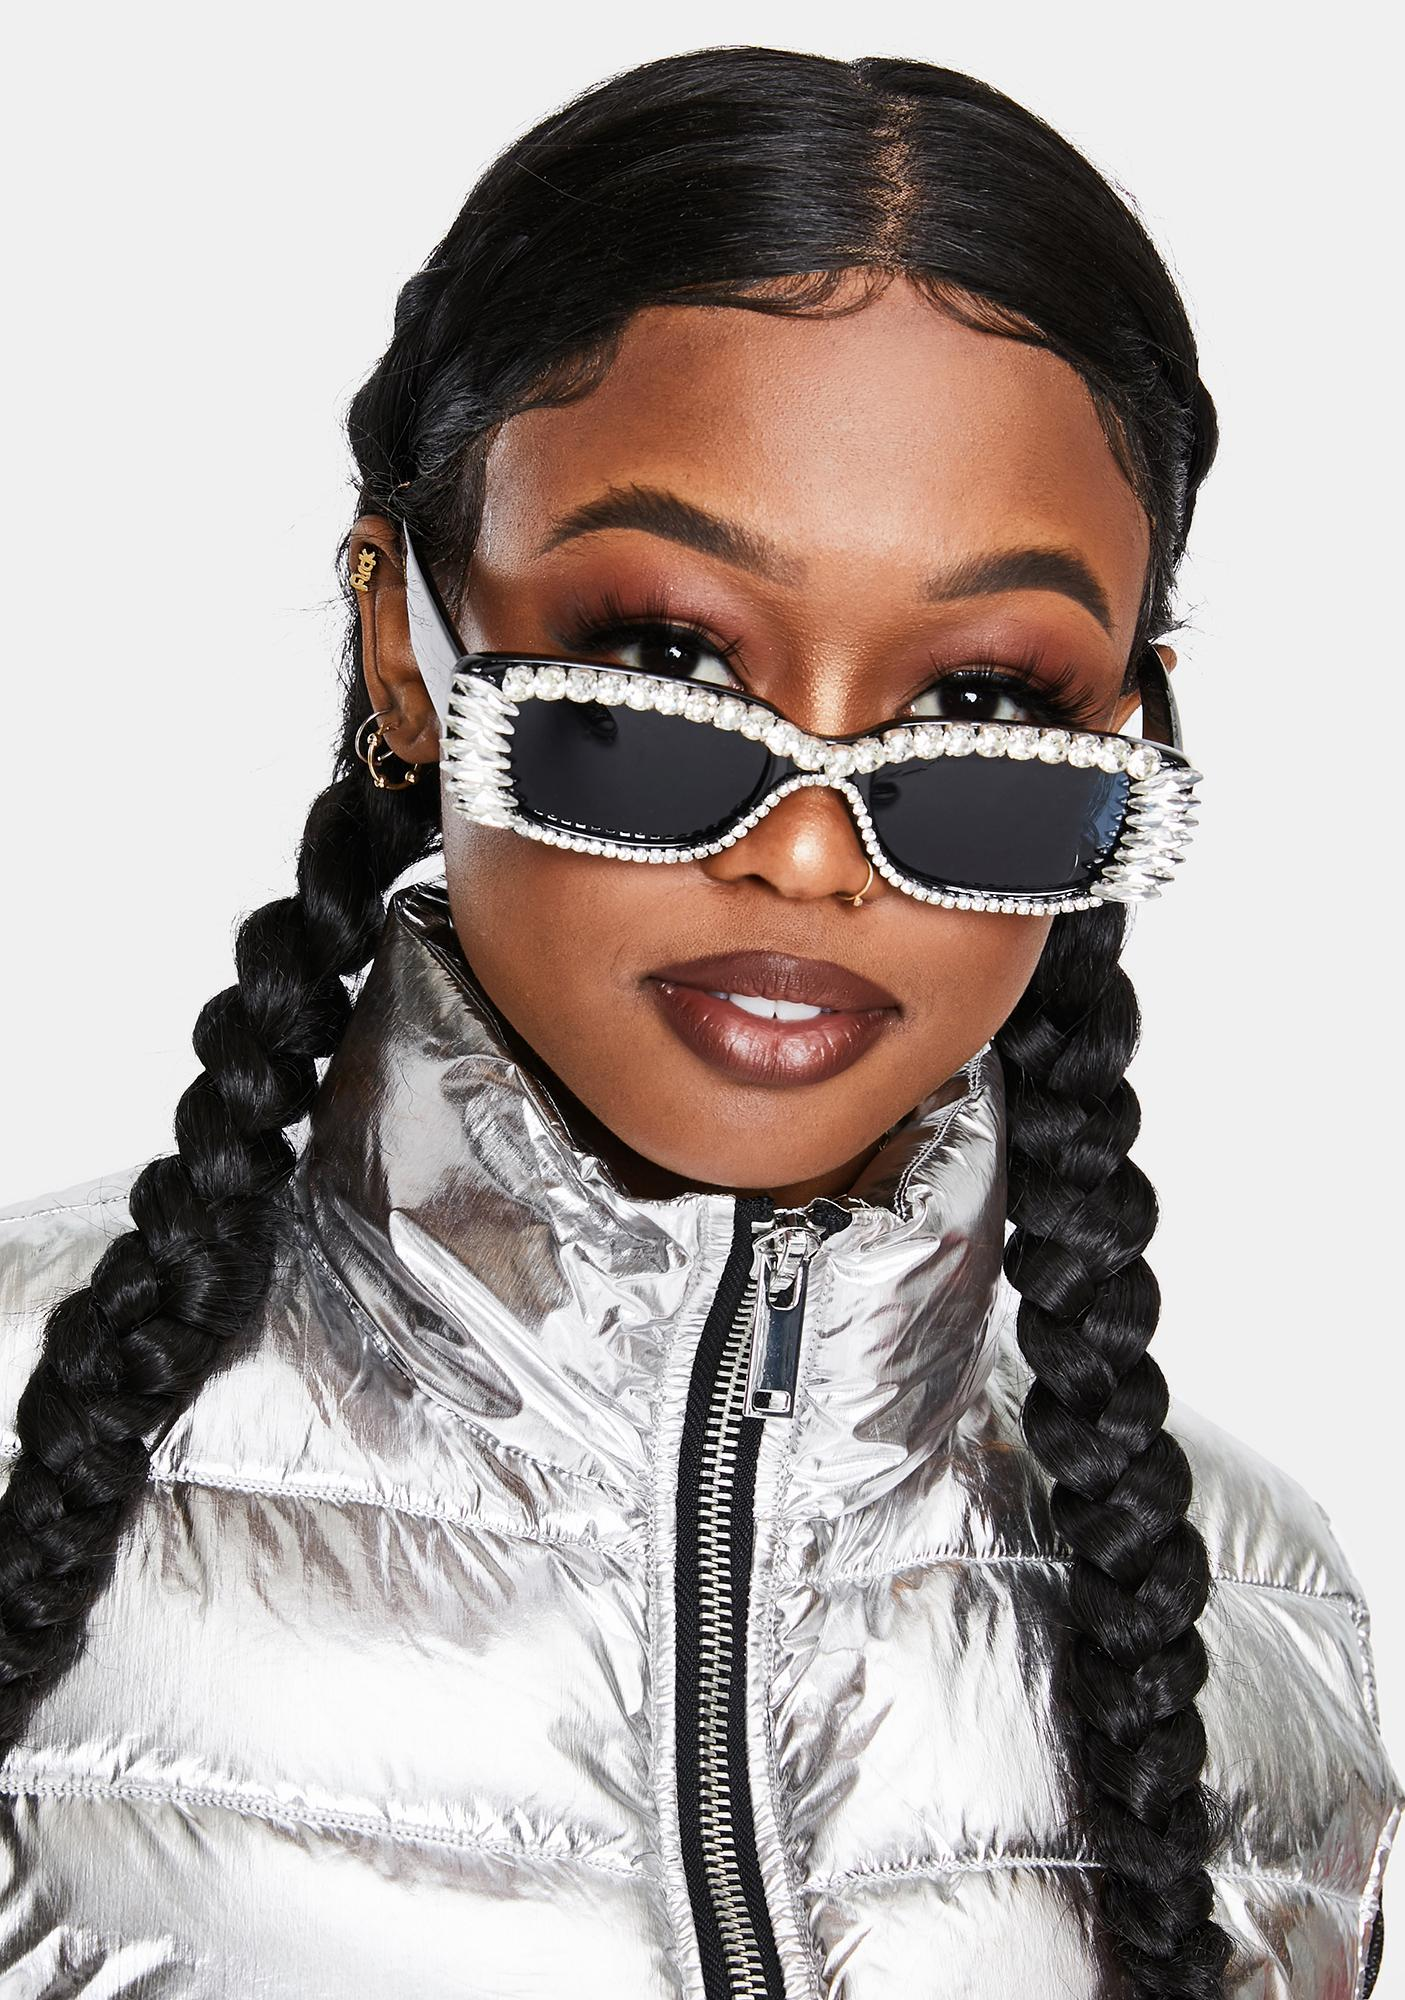 Onyx Fast Check Out Studded Sunglasses